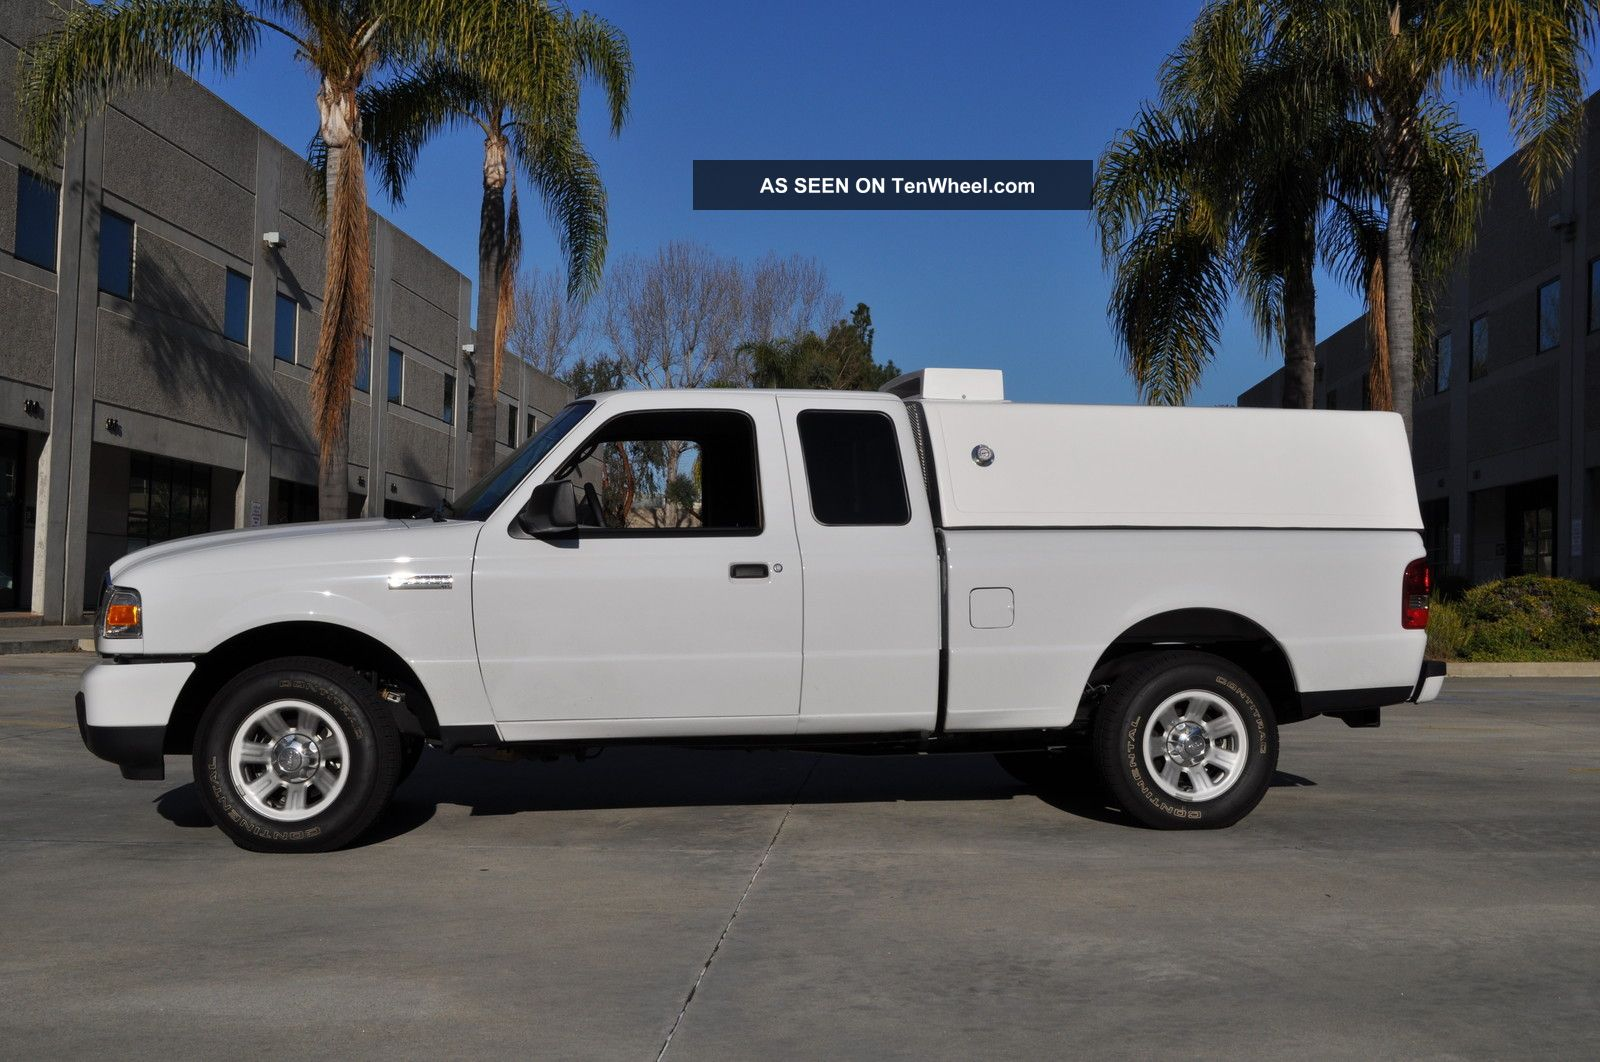 2011 Ford Ranger Extended Cab Refrigerator Truck Catering